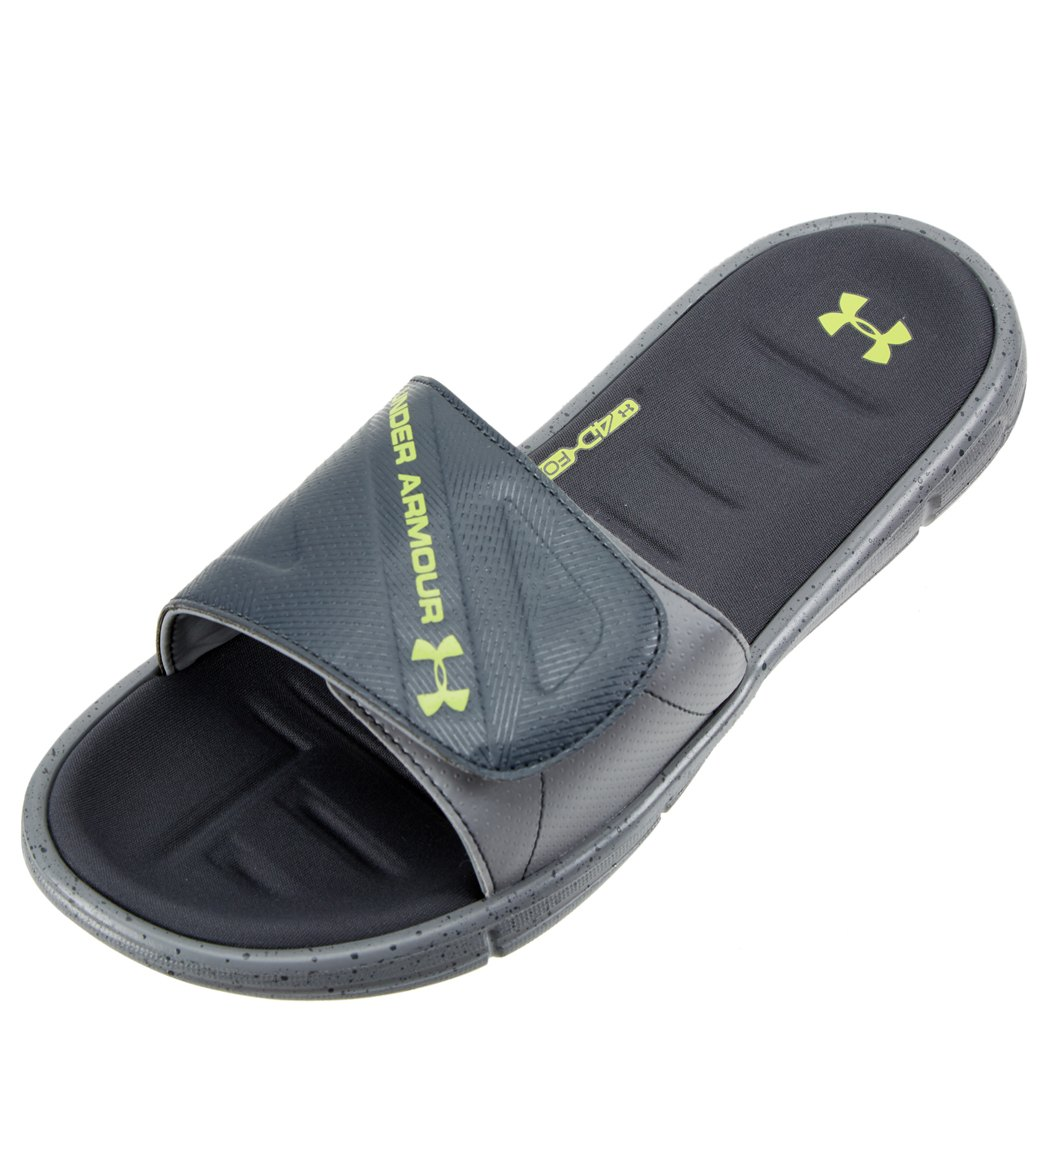 2b40ba53 Under Armour Men's Ignite Slide Sandal